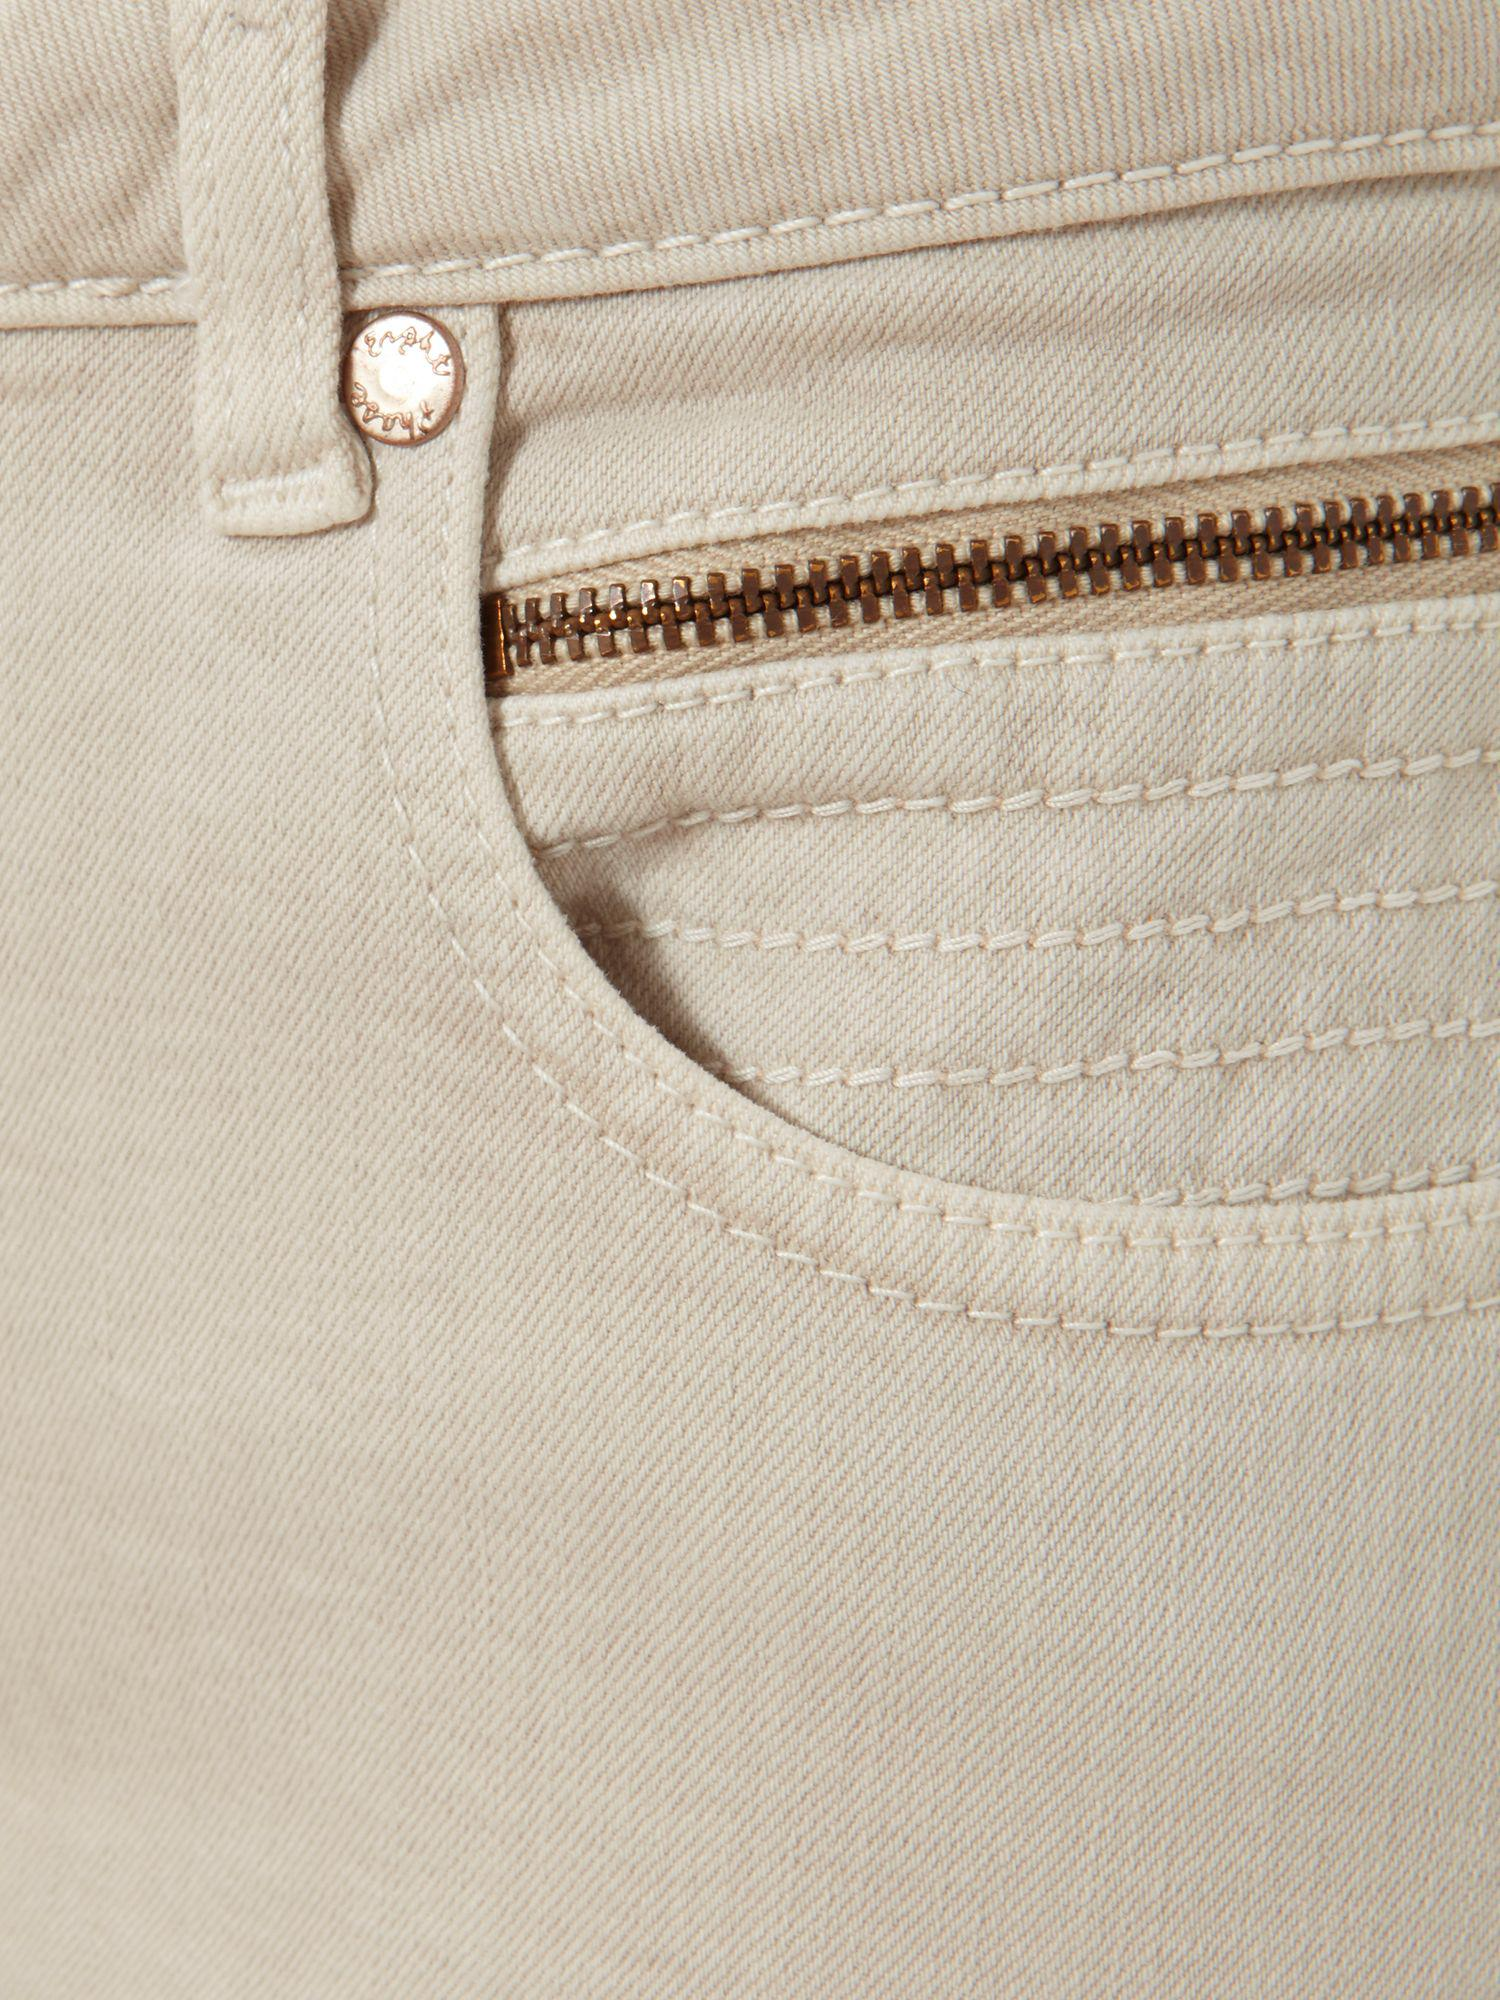 c70ded76d8 Phase Eight Victoria Seamed Jeans in Natural - Lyst